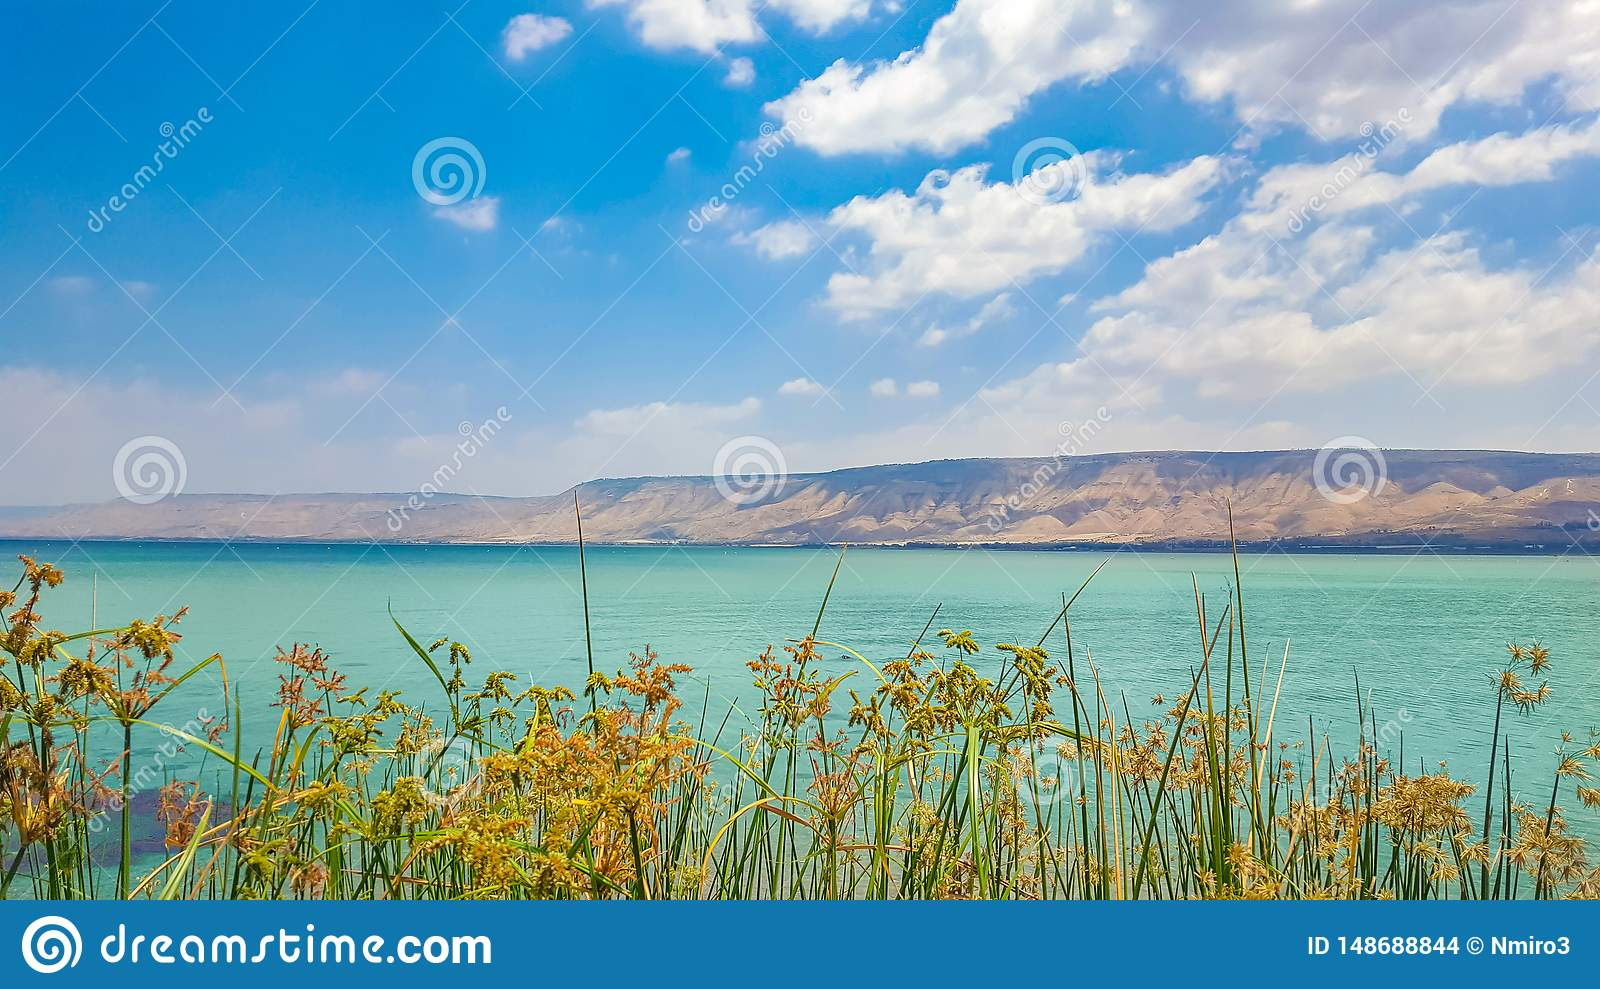 Sea of Galilee view at noon